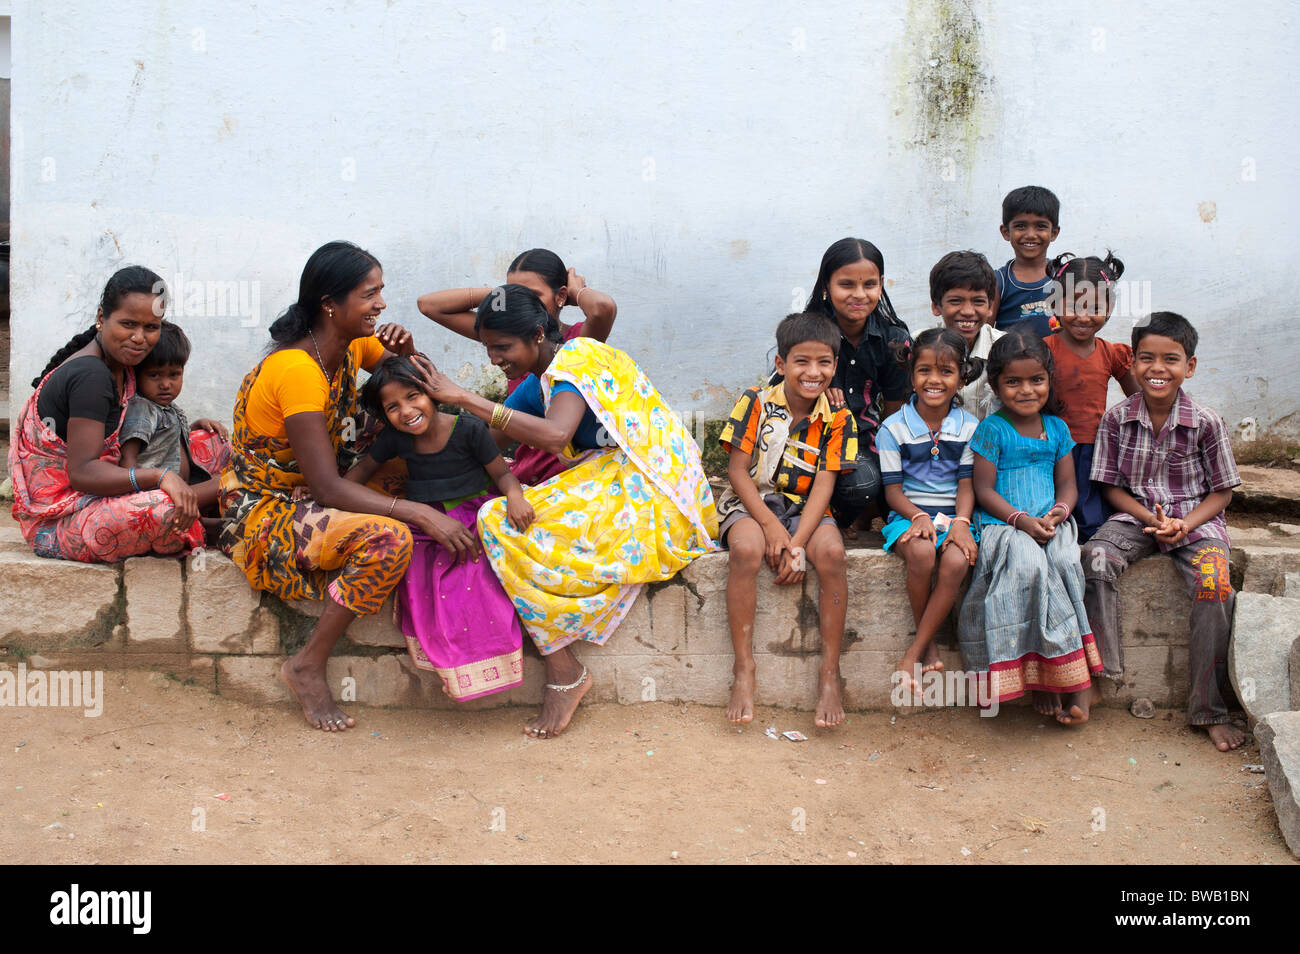 Indian mothers nitpicking young girls head in a rural indian village community. Andhra Pradesh, India - Stock Image